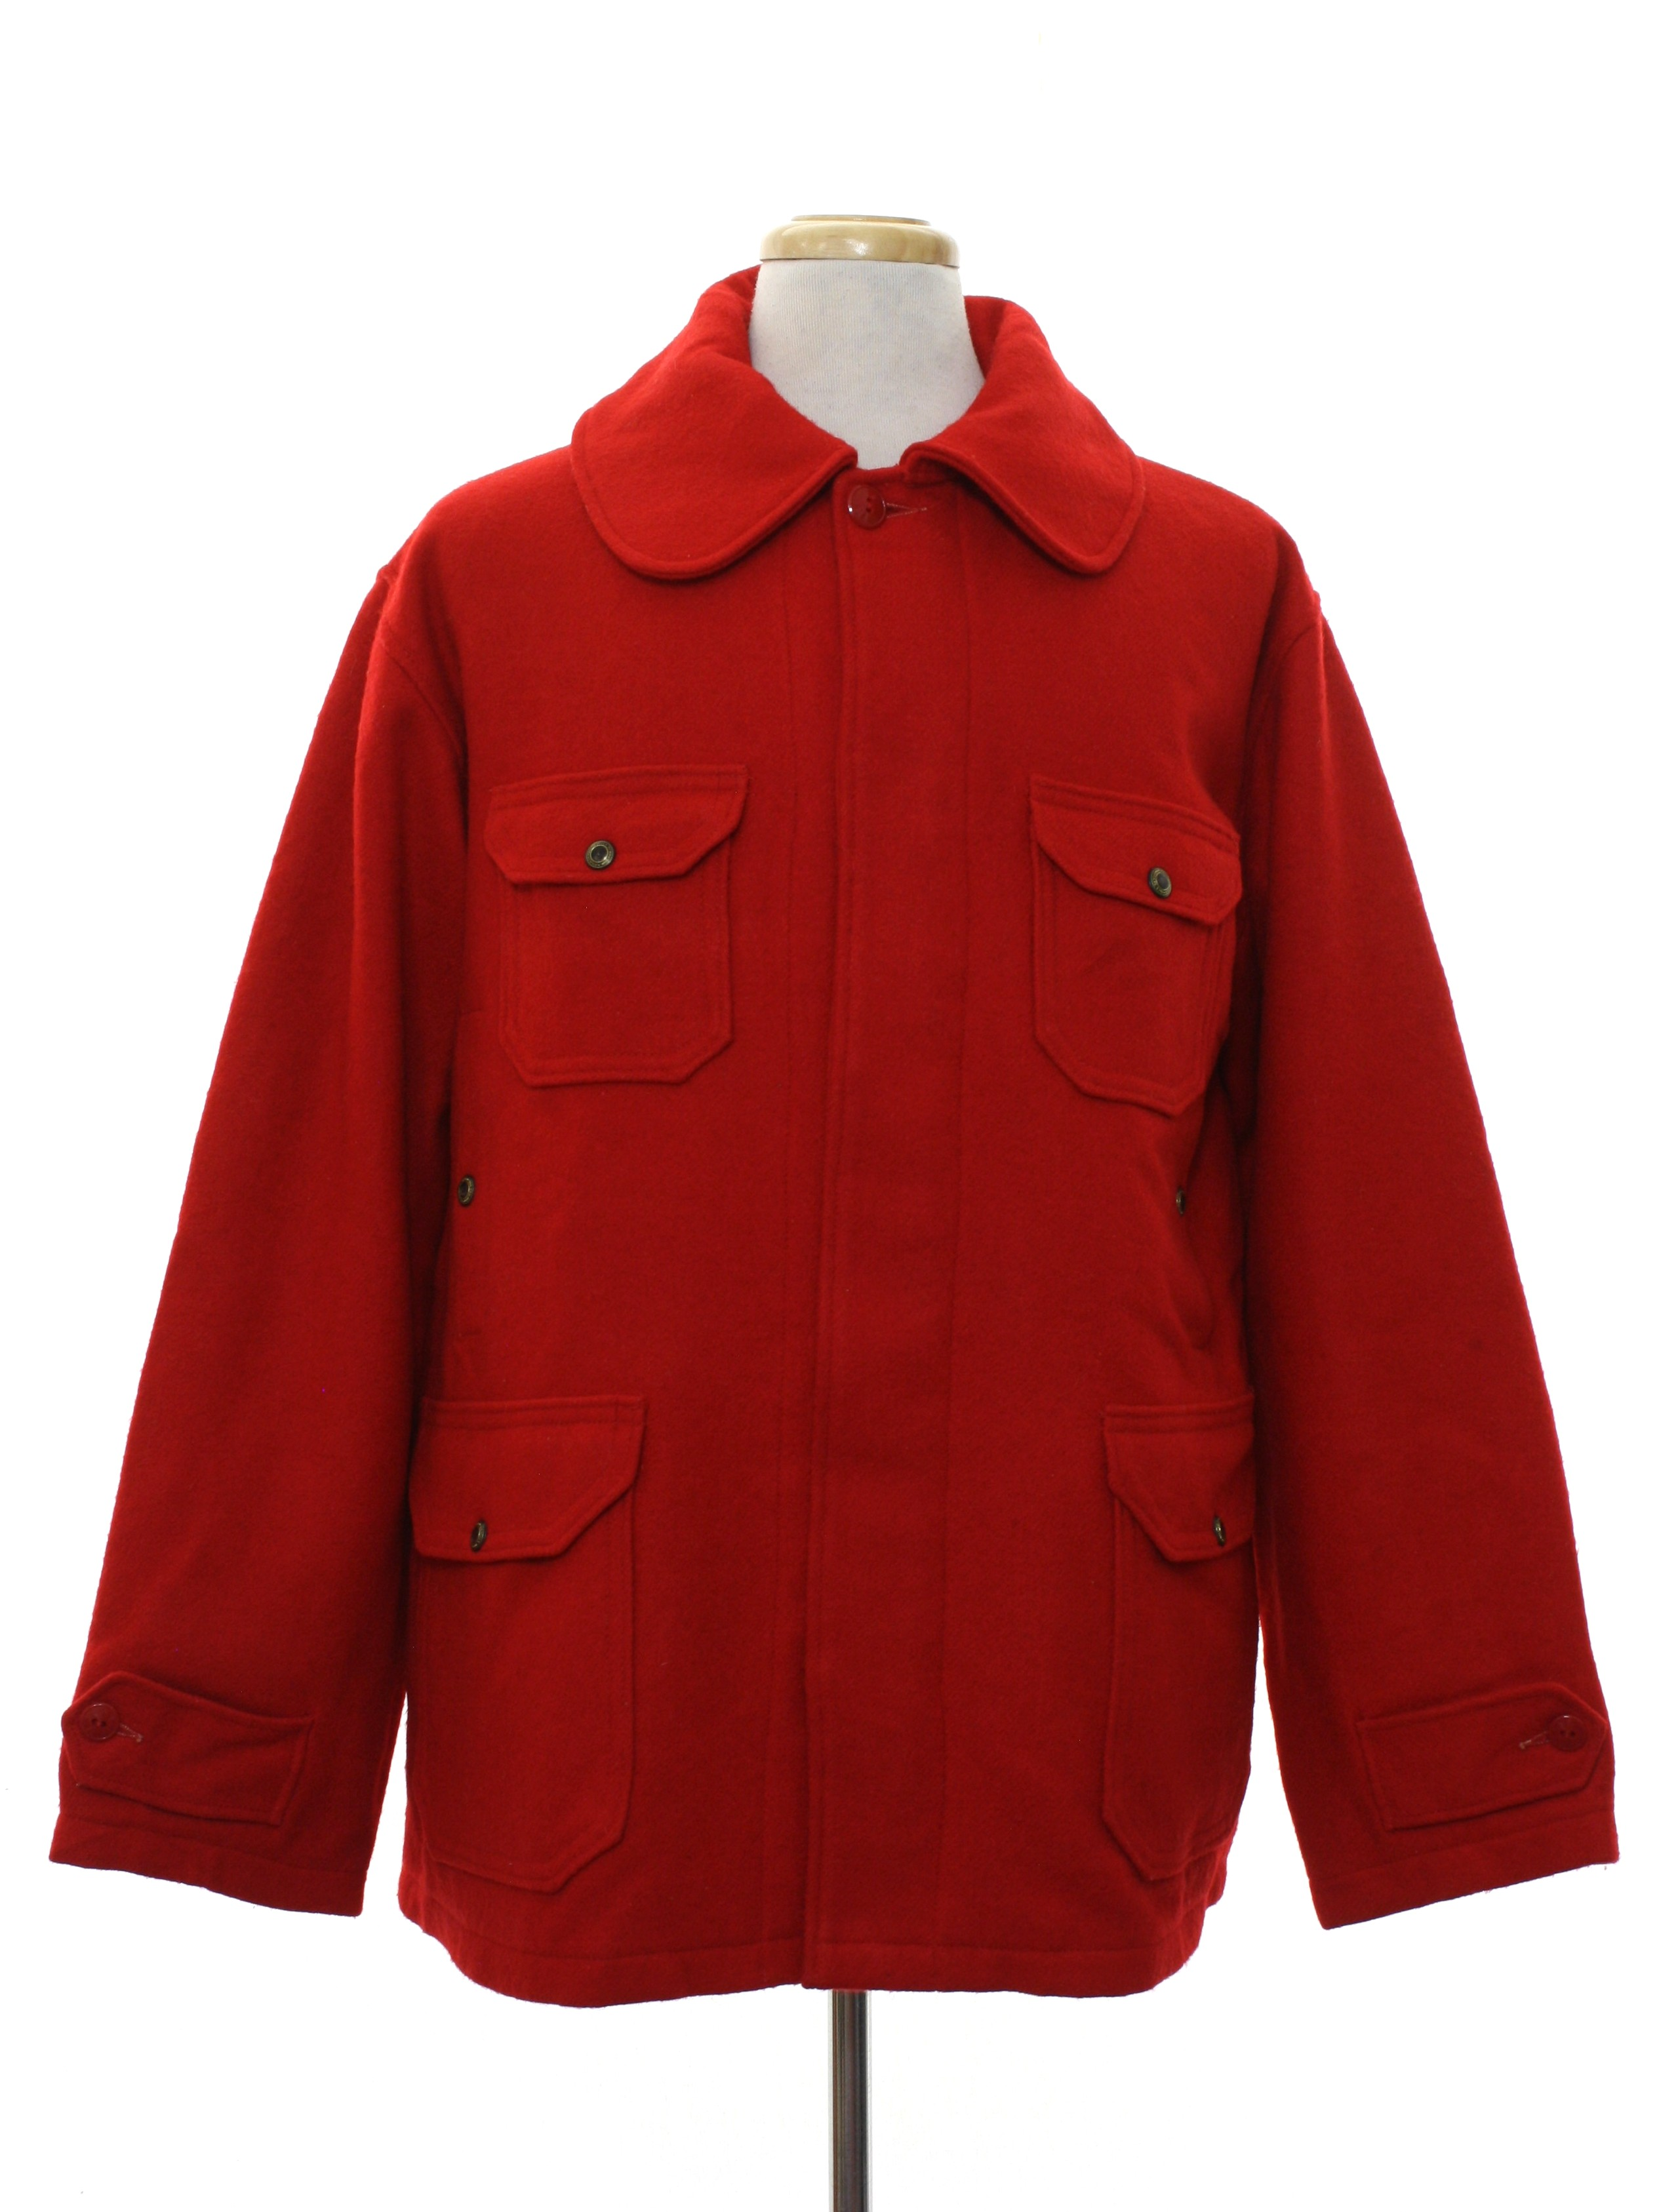 Retro 1950s Jacket Late 50s Or Early 60s Woolrich Mens